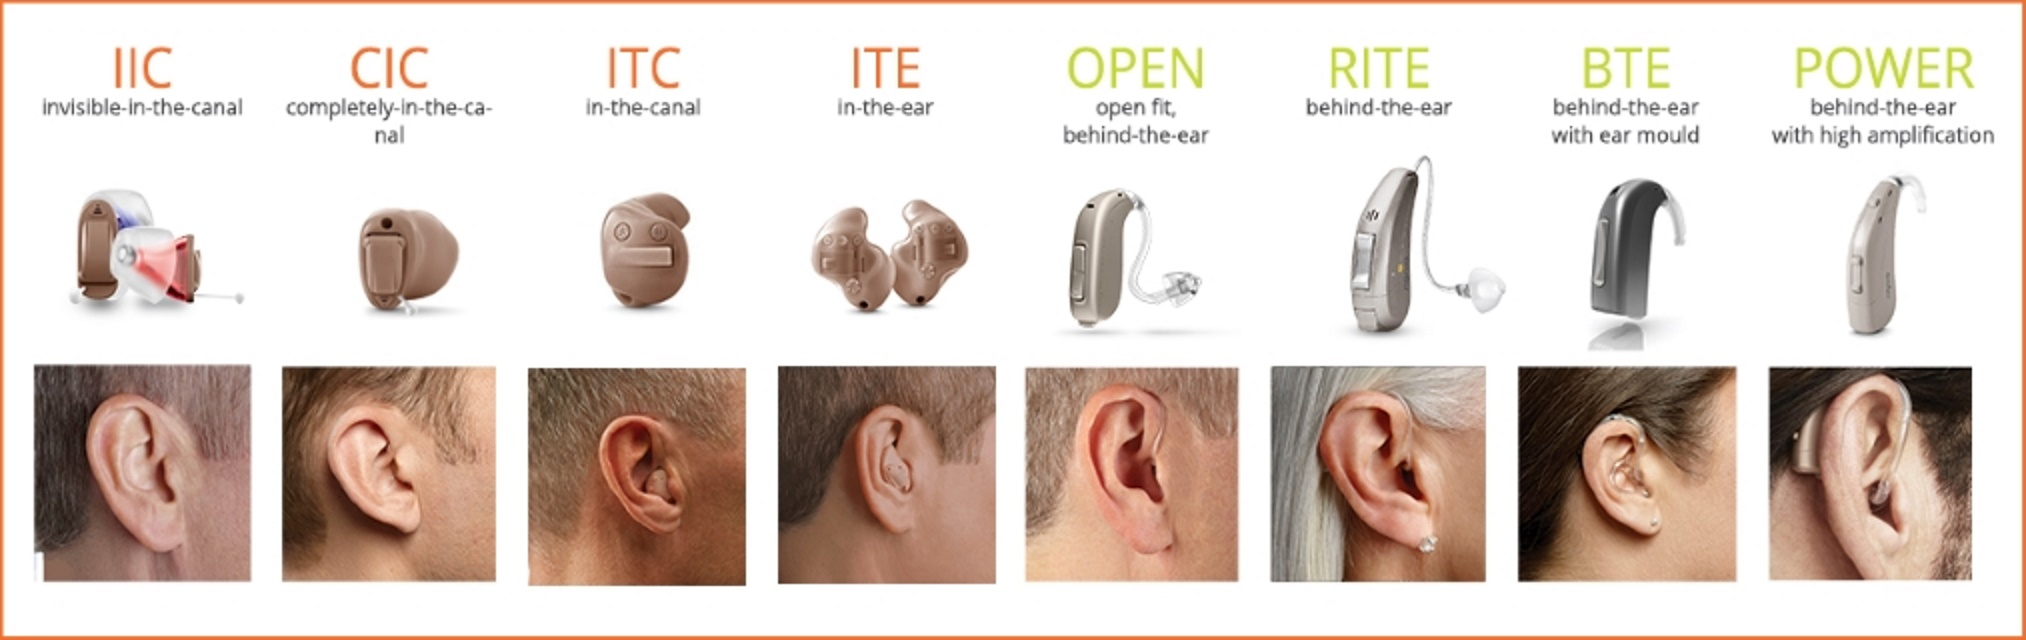 How To Build Hearing Aid Styles